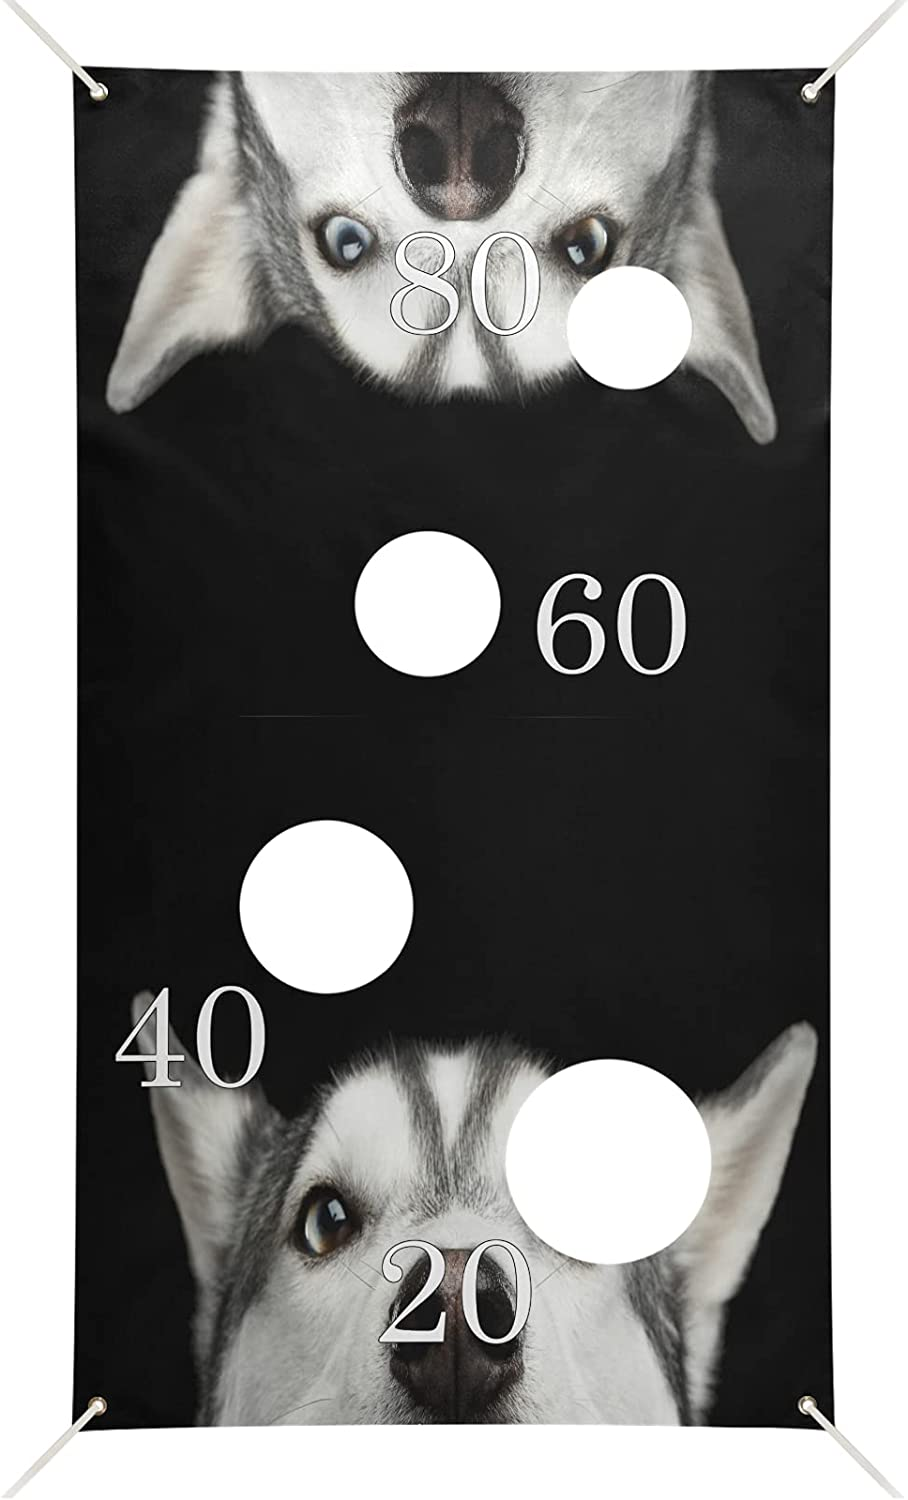 xigua Husky Dog Toss Games Banner Indoor Outdoo with 6 Bags Our shop OFFers the best service Bean unisex